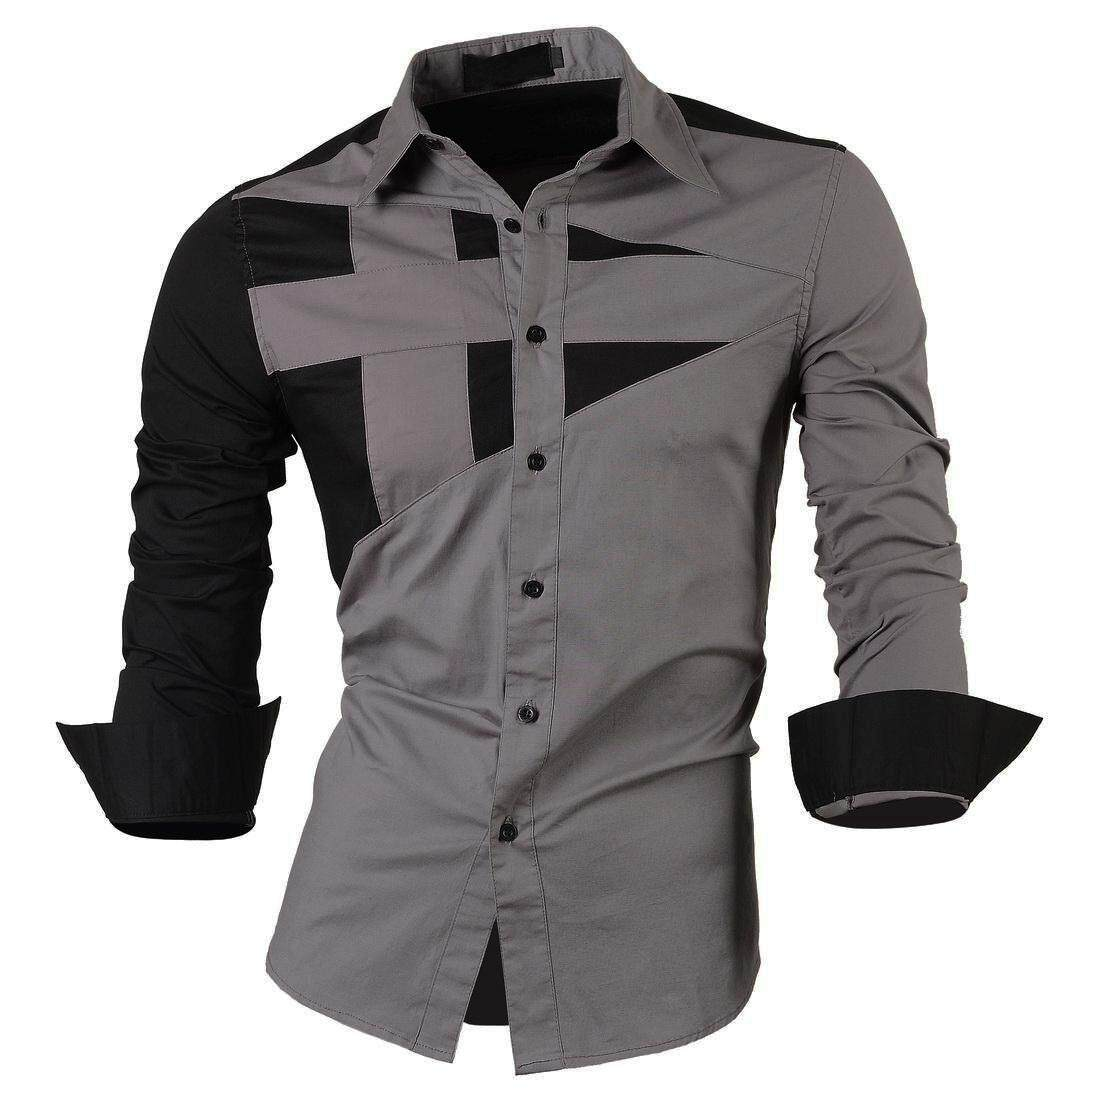 Top Quality Mens Slim Fit Unique Neckline Stylish Dress Long Sleeve Casual Shirt Gray Size XL/US M - Intl - intl